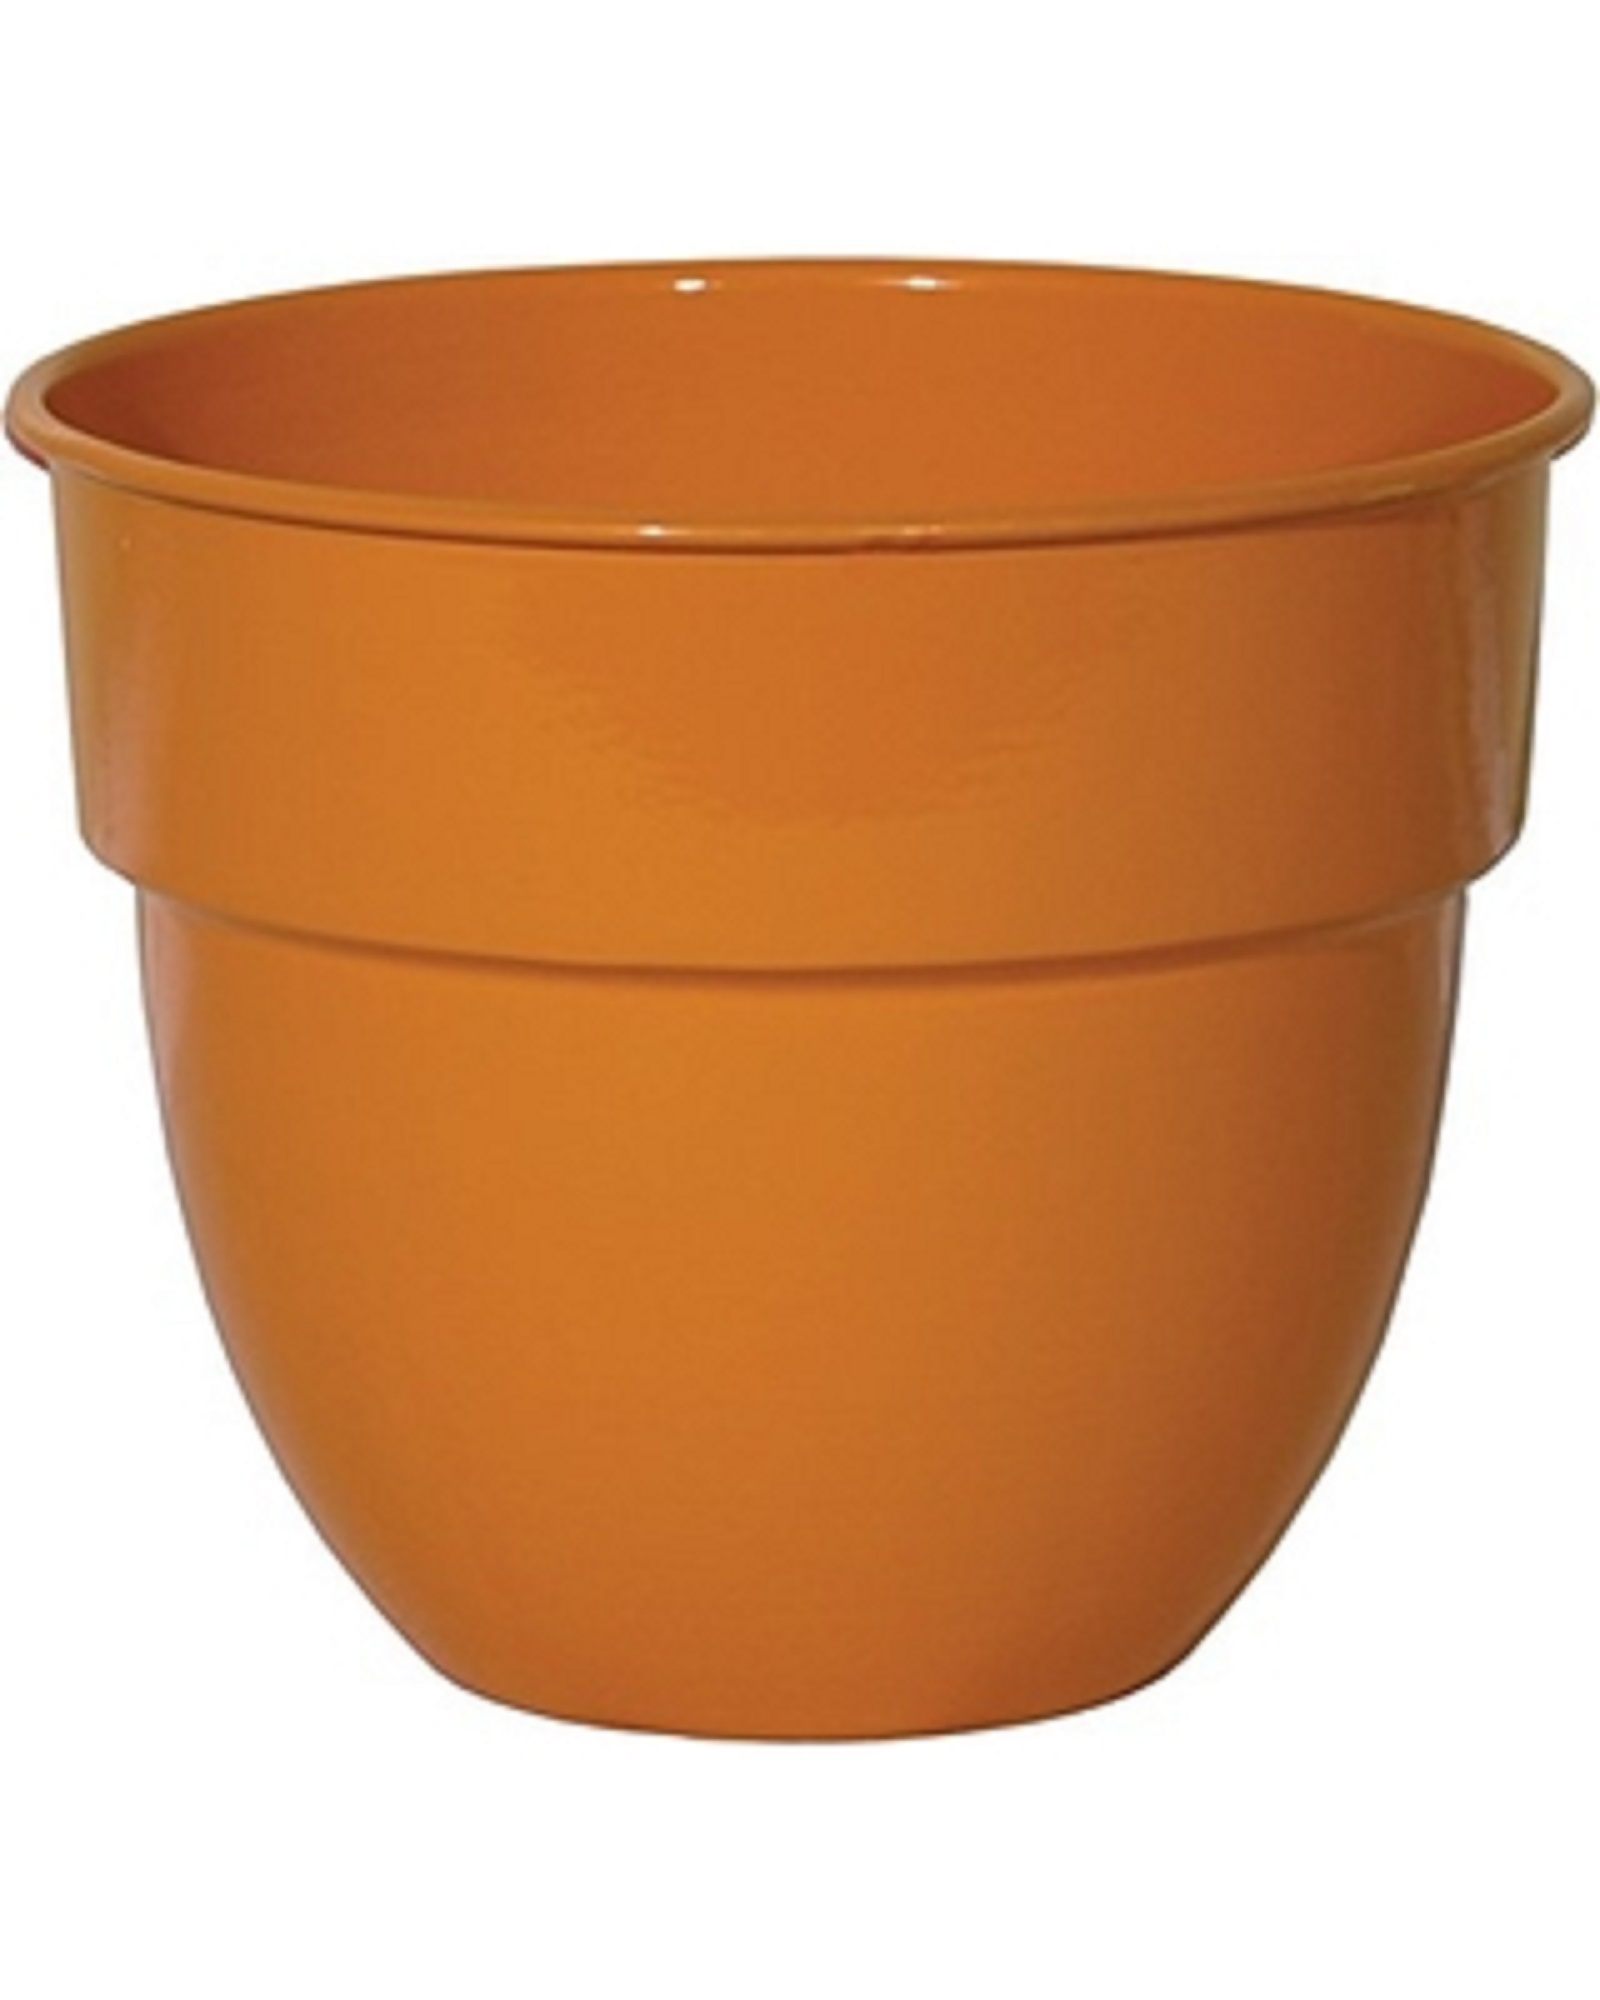 "Robert Allen Home & Garden Mini Bella Classic Bowl Planter 6"""" Mandarin"